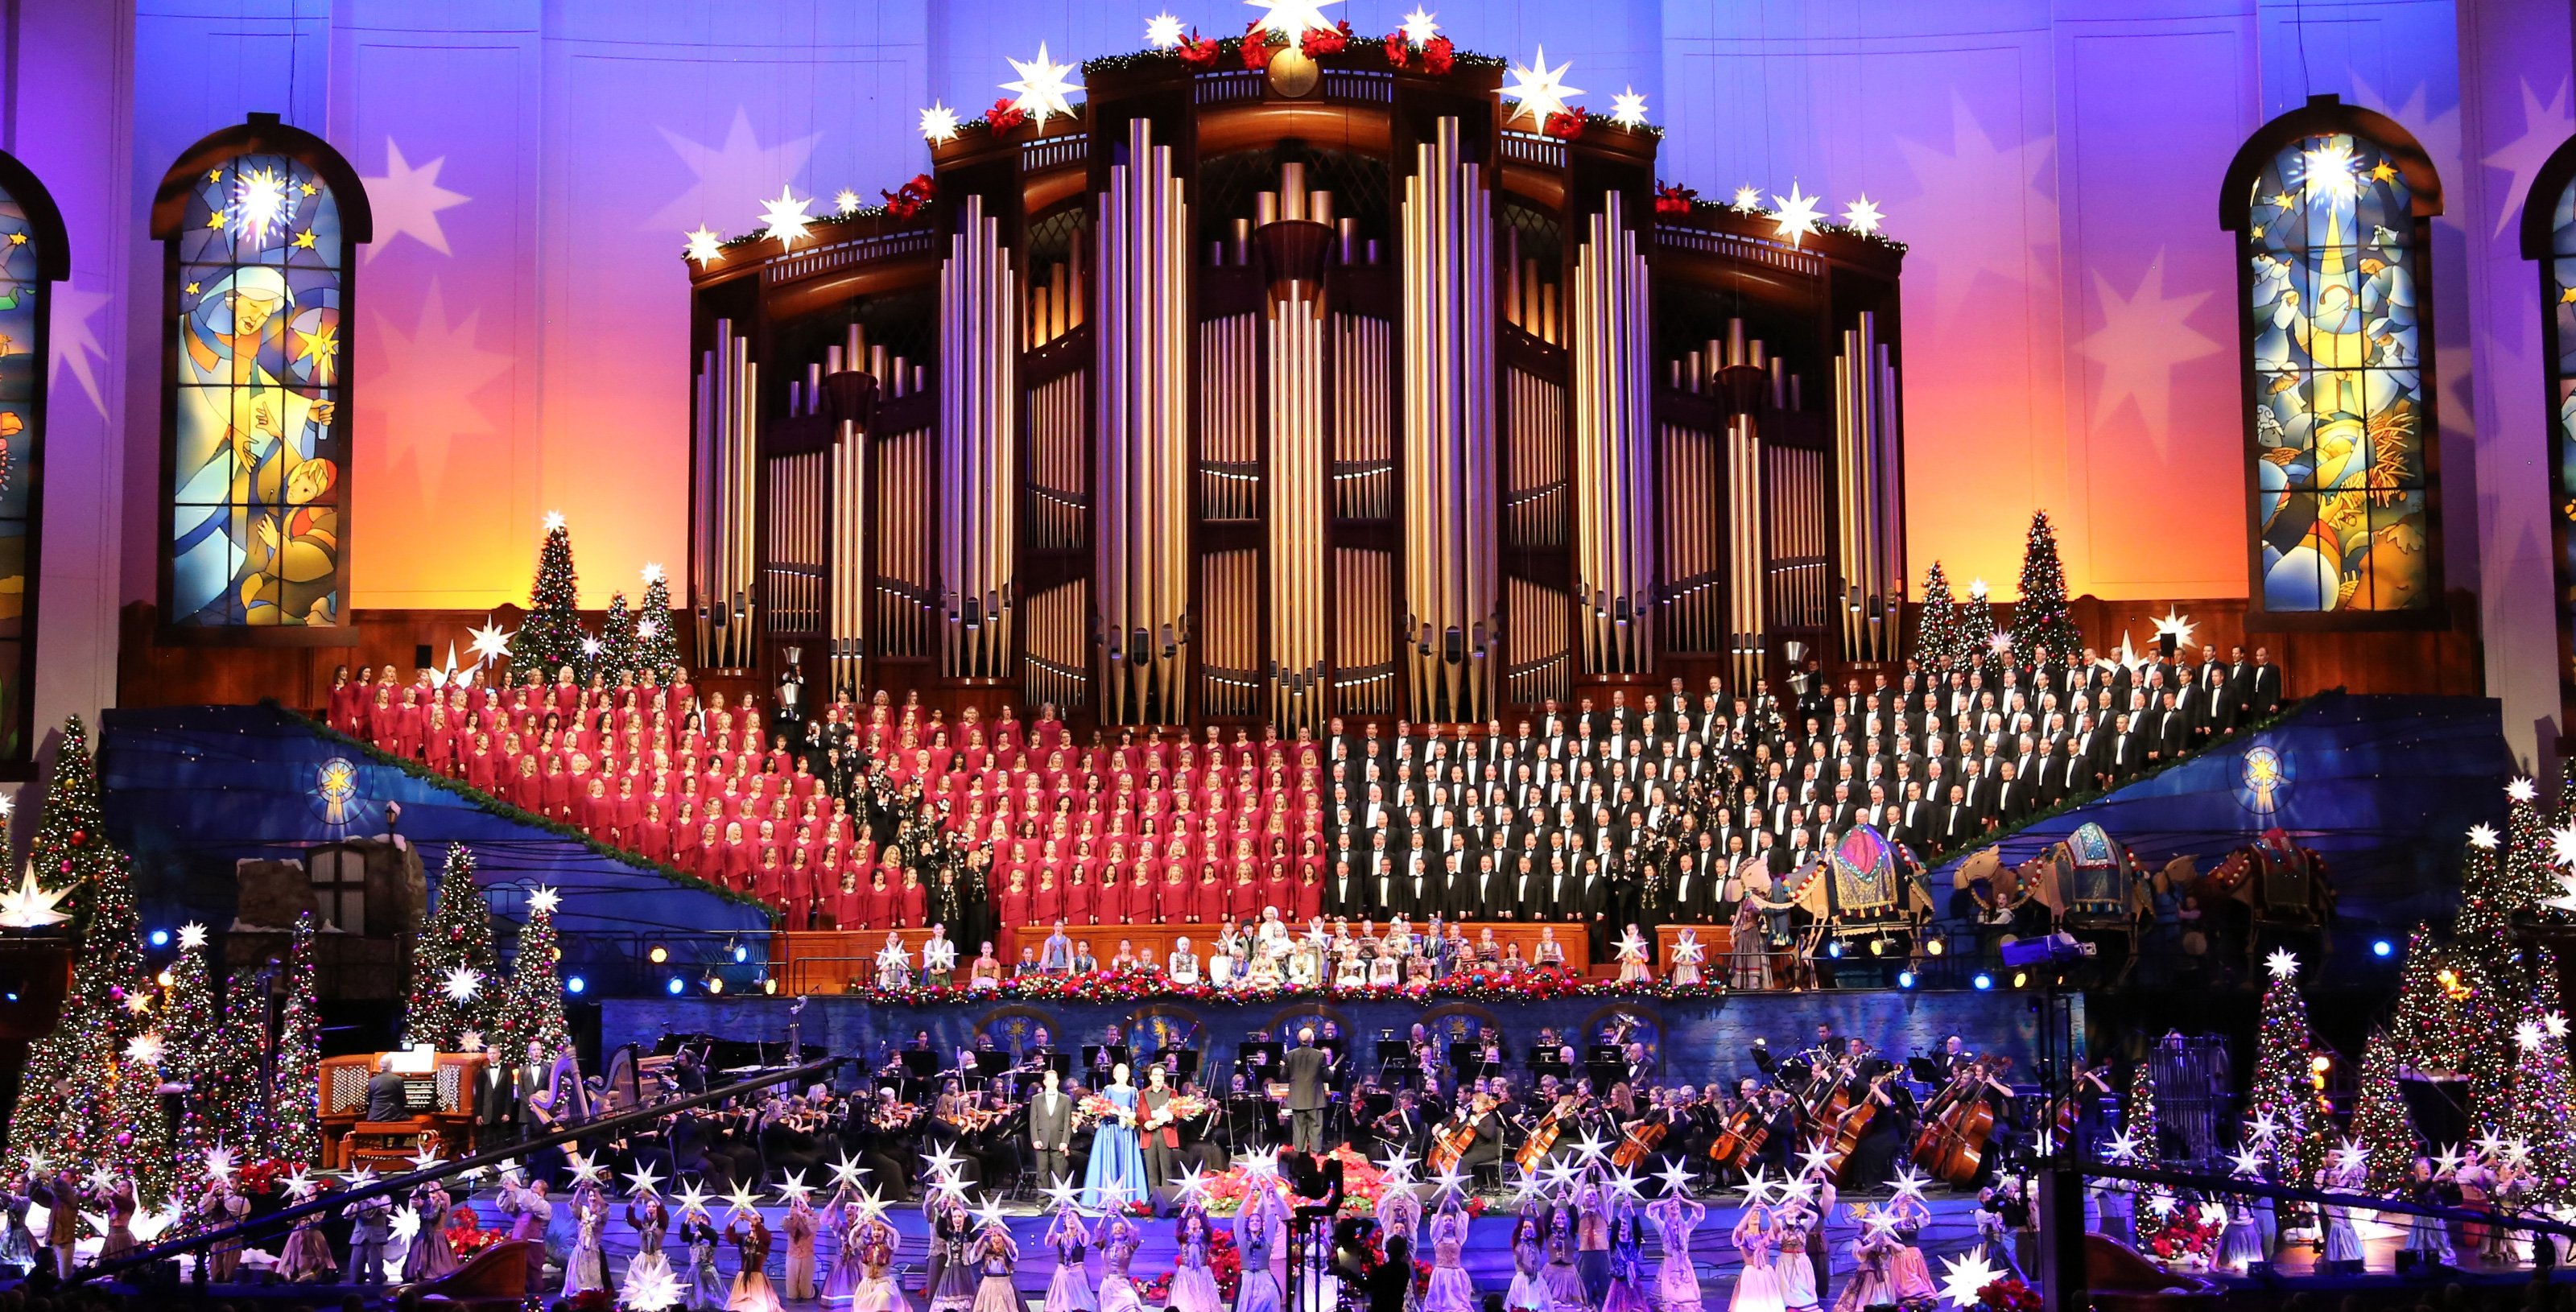 Lds Christmas Concert.Past Concerts Christmas With The Mormon Tabernacle Choir Pbs